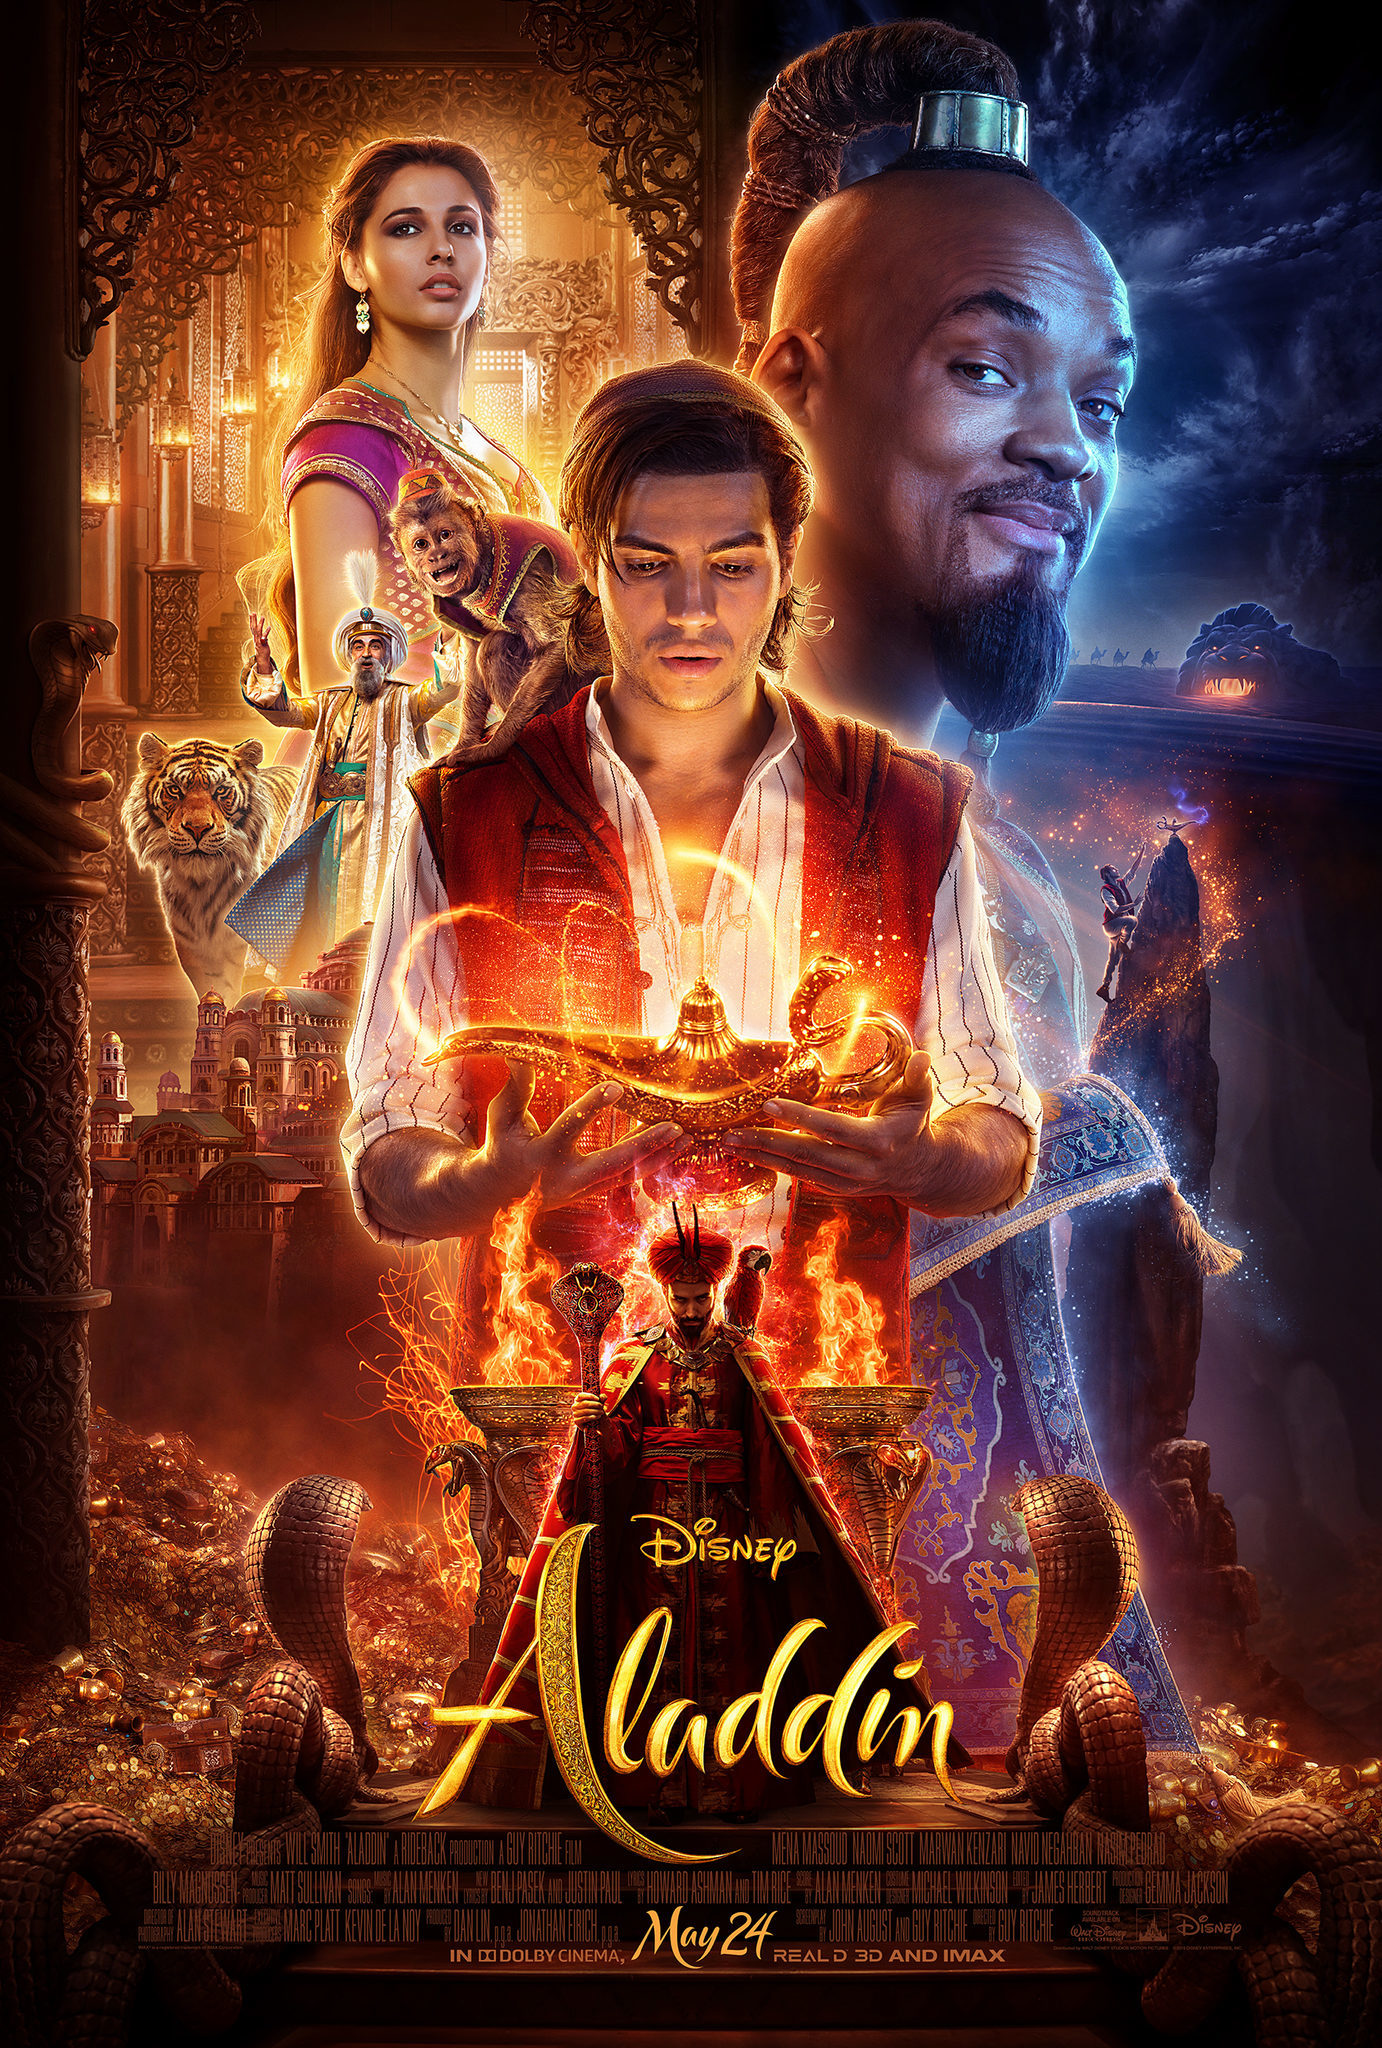 My Thoughts on the Live-Action Aladdin Movie